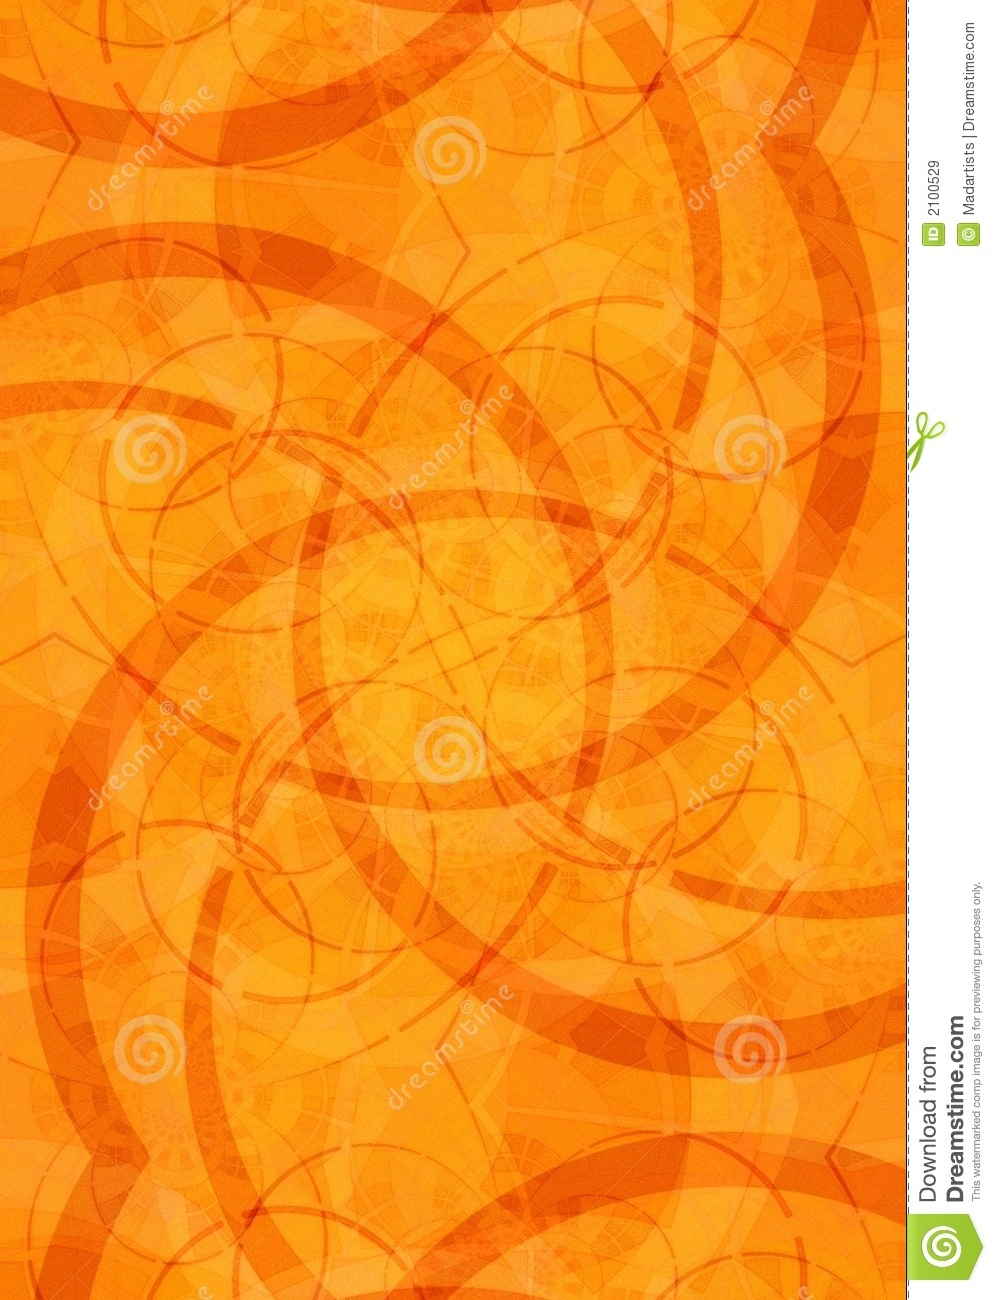 Orange Backgrounds Texture Royalty Free Stock Images